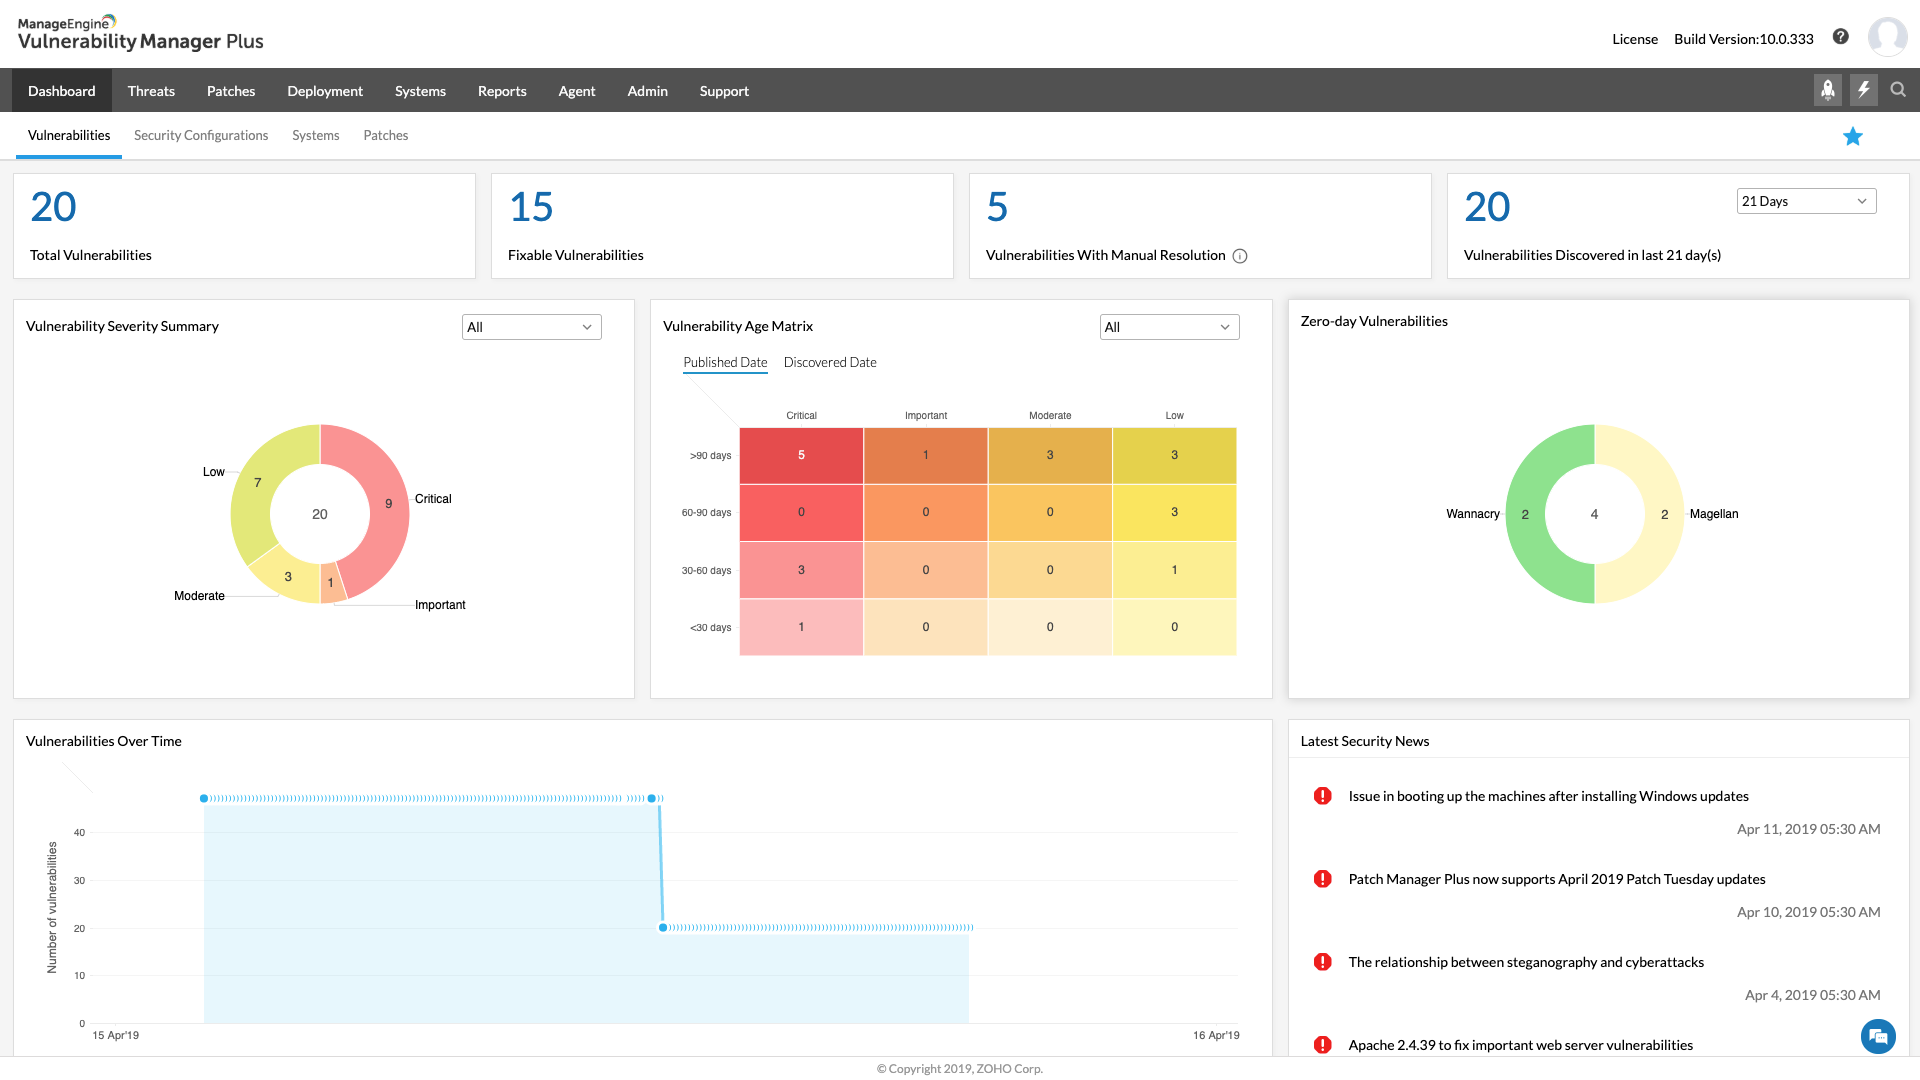 ManageEngine Vulnerability Manager Plus Software - Dashboard